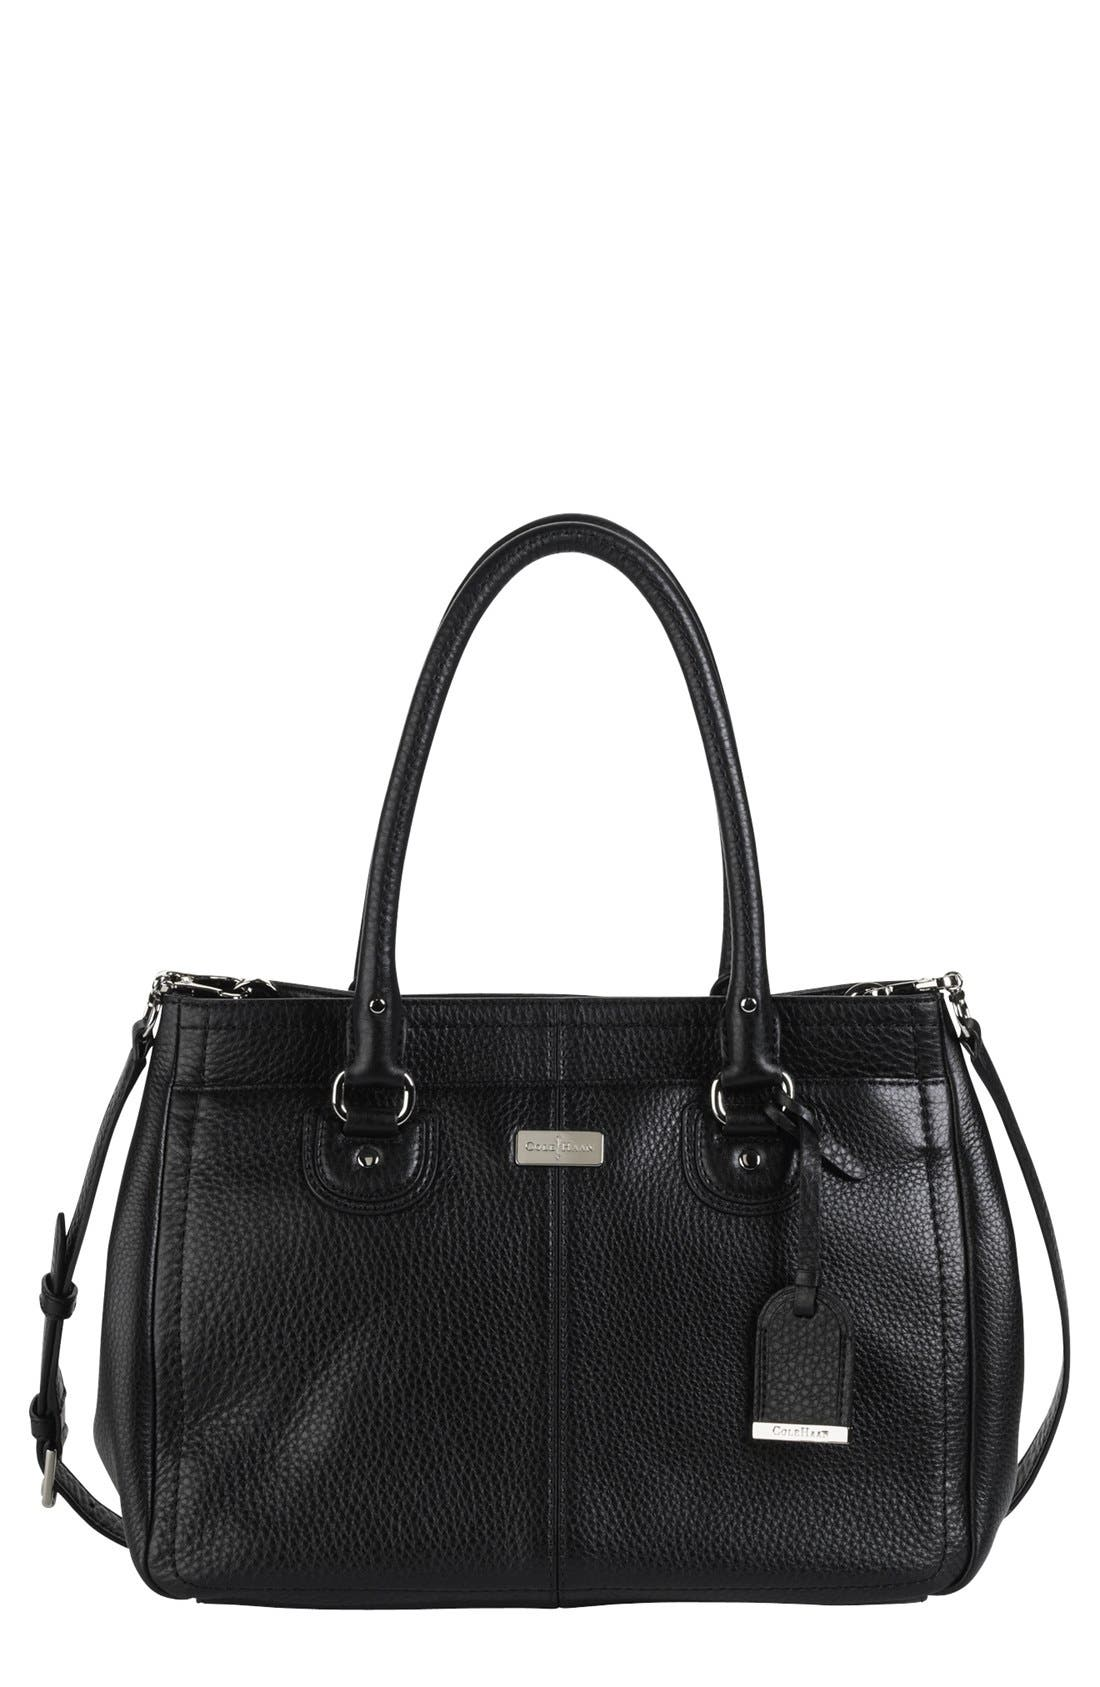 Main Image - Cole Haan 'Village' Satchel